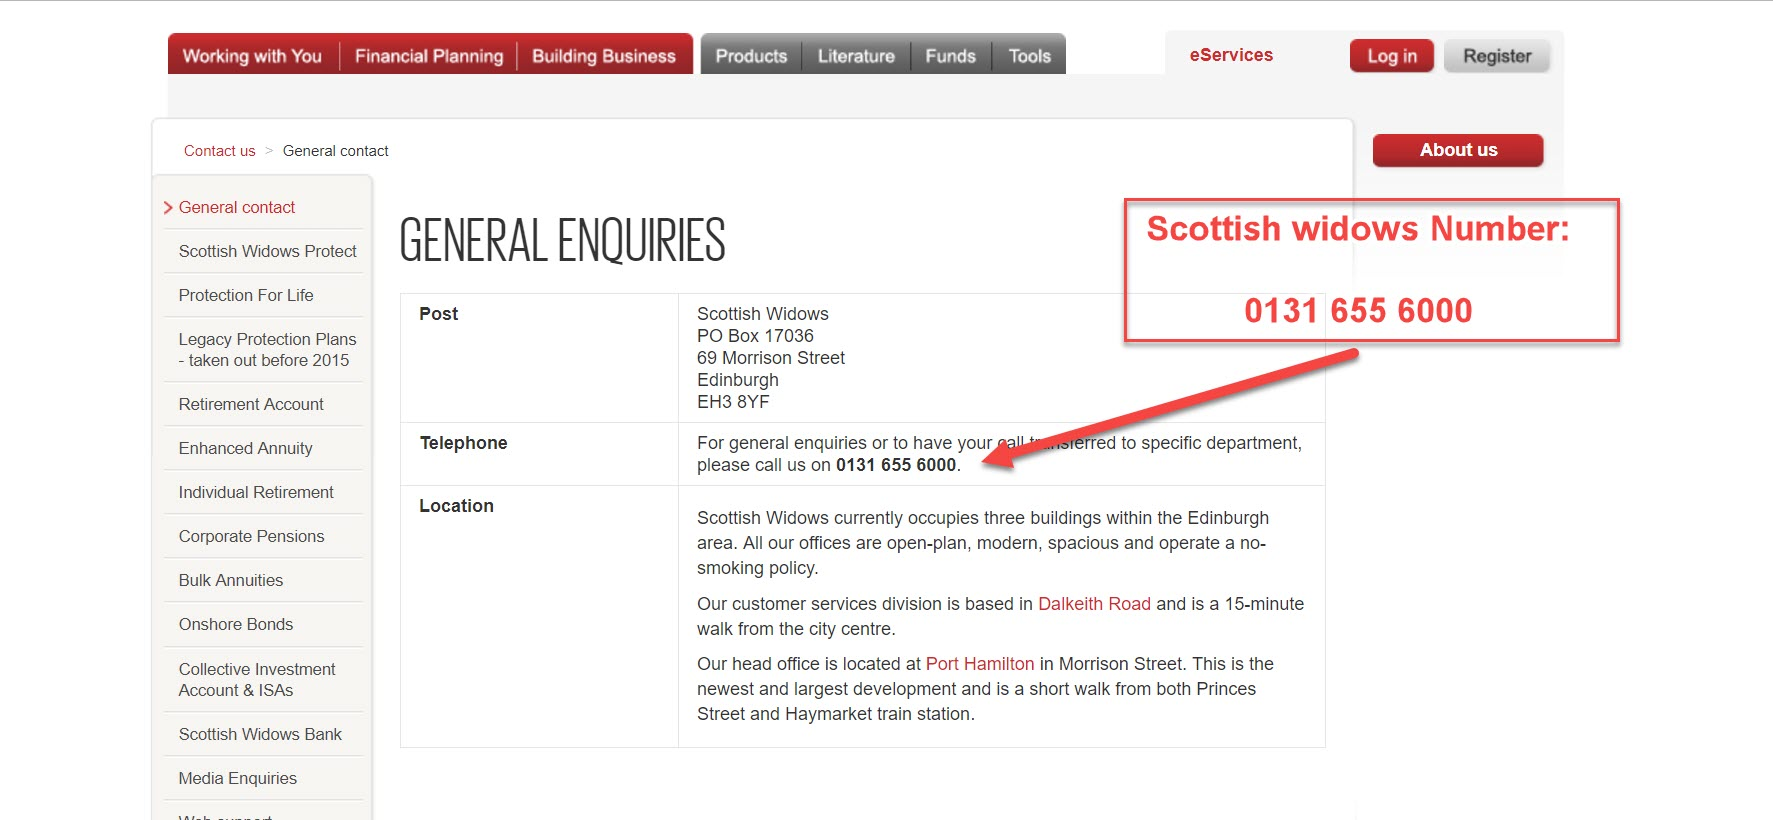 scottish widows contact number